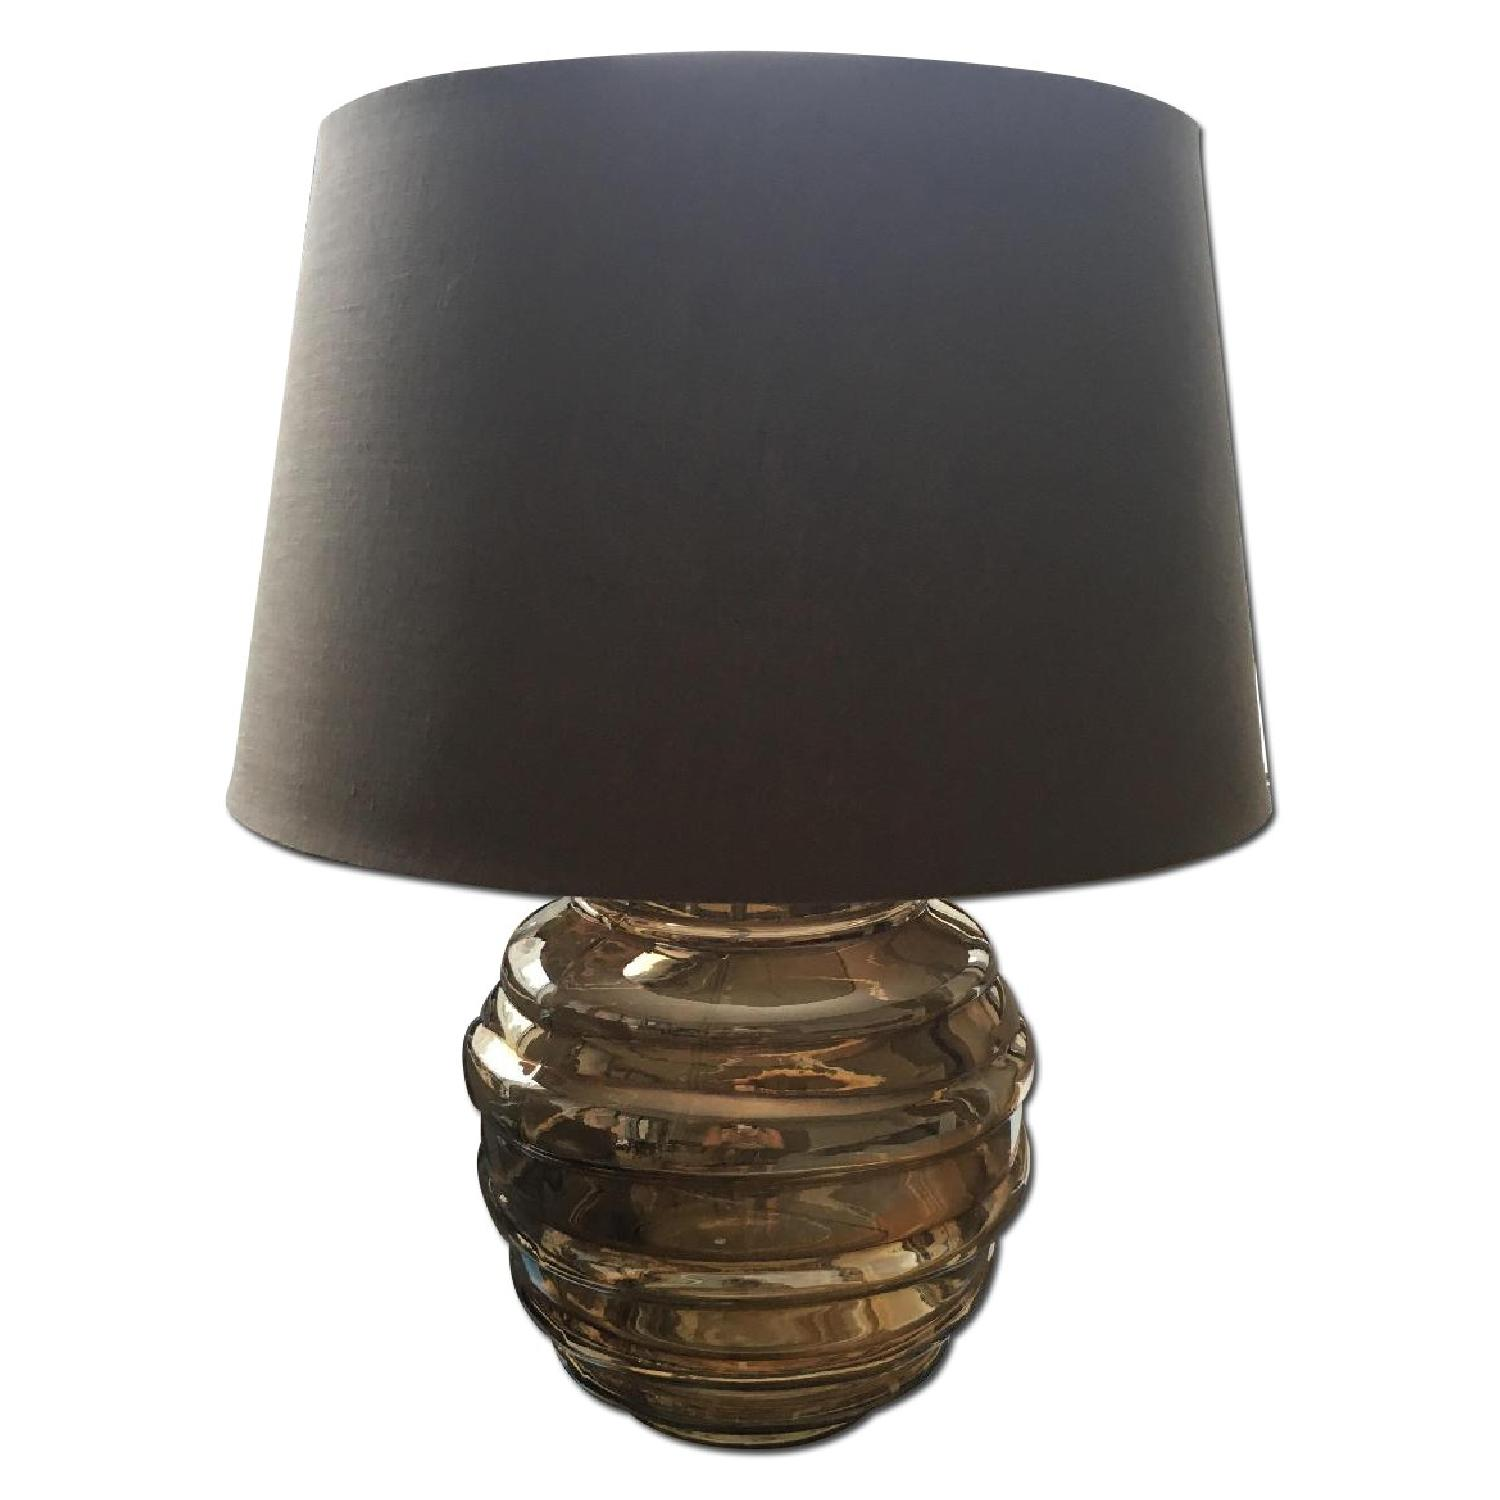 Crate & Barrel Bronze Glass Table Lamp w/ Neutral/Brown Shade - image-0